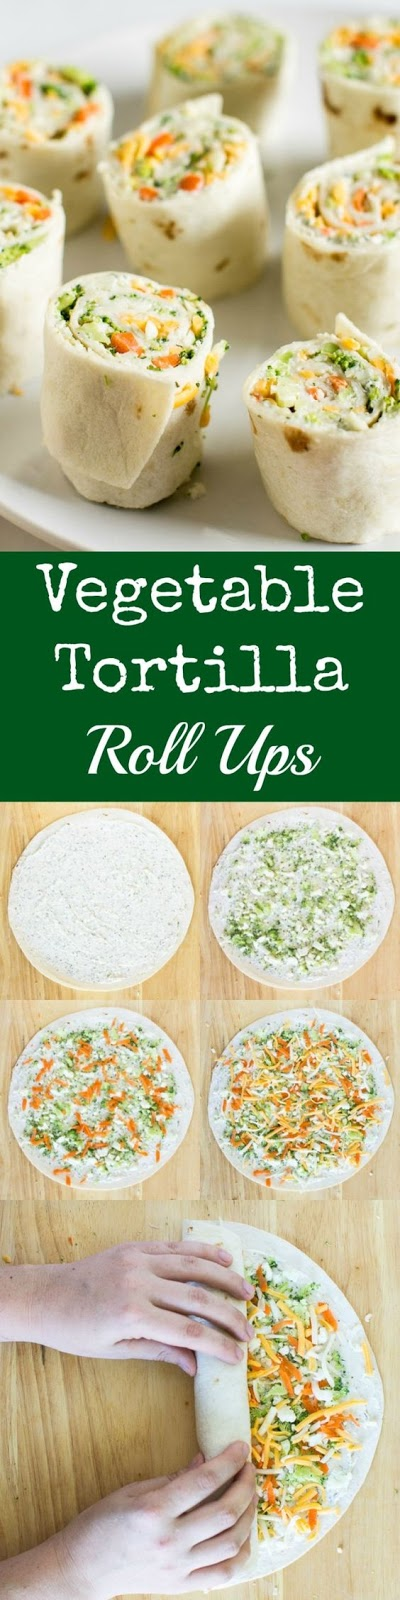 VEGETABLE TORTILLA ROLL UPS   #DESSERTS #HEALTHYFOOD #EASYRECIPES #DINNER #LAUCH #DELICIOUS #EASY #HOLIDAYS #RECIPE #SPECIALDIET #WORLDCUISINE #CAKE #APPETIZERS #HEALTHYRECIPES #DRINKS #COOKINGMETHOD #ITALIANRECIPES #MEAT #VEGANRECIPES #COOKIES #PASTA #FRUIT #SALAD #SOUPAPPETIZERS #NONALCOHOLICDRINKS #MEALPLANNING #VEGETABLES #SOUP #PASTRY #CHOCOLATE #DAIRY #ALCOHOLICDRINKS #BULGURSALAD #BAKING #SNACKS #BEEFRECIPES #MEATAPPETIZERS #MEXICANRECIPES #BREAD #ASIANRECIPES #SEAFOODAPPETIZERS #MUFFINS #BREAKFASTANDBRUNCH #CONDIMENTS #CUPCAKES #CHEESE #CHICKENRECIPES #PIE #COFFEE #NOBAKEDESSERTS #HEALTHYSNACKS #SEAFOOD #GRAIN #LUNCHESDINNERS #MEXICAN #QUICKBREAD #LIQUOR